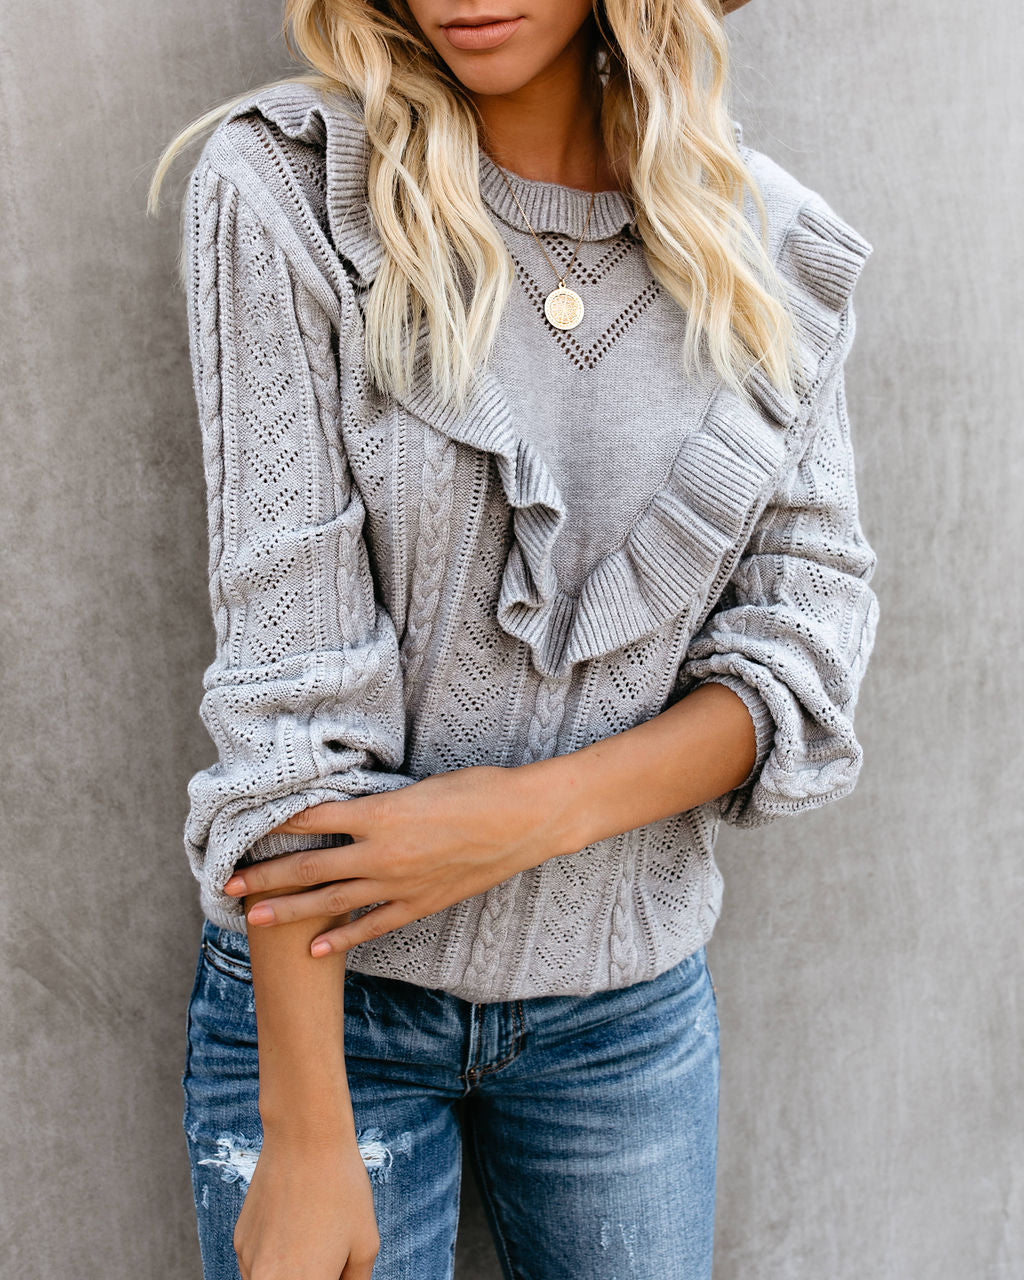 Nob Hill Ruffle Cable Knit Sweater - Heather Grey